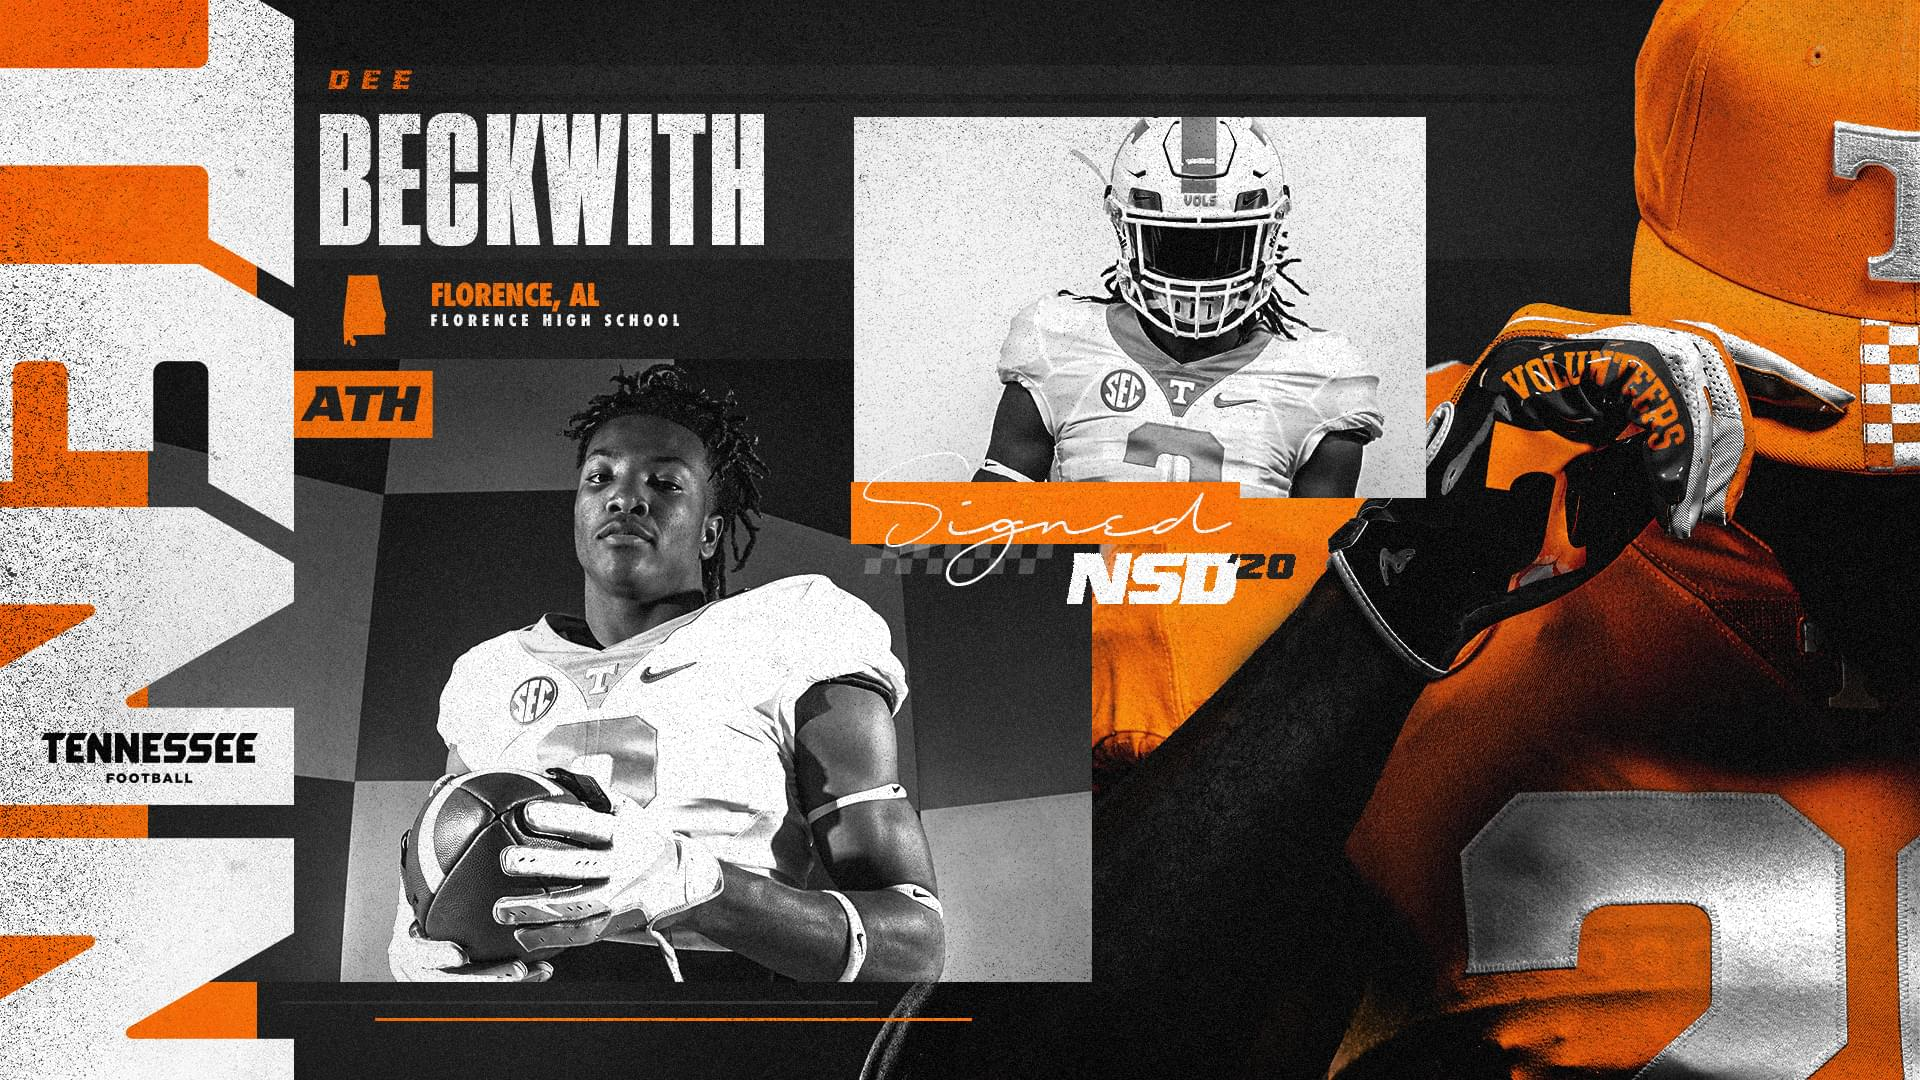 3-star ATH Dee Beckwith – UT Signee 22, Profile/Analysis/Highlights